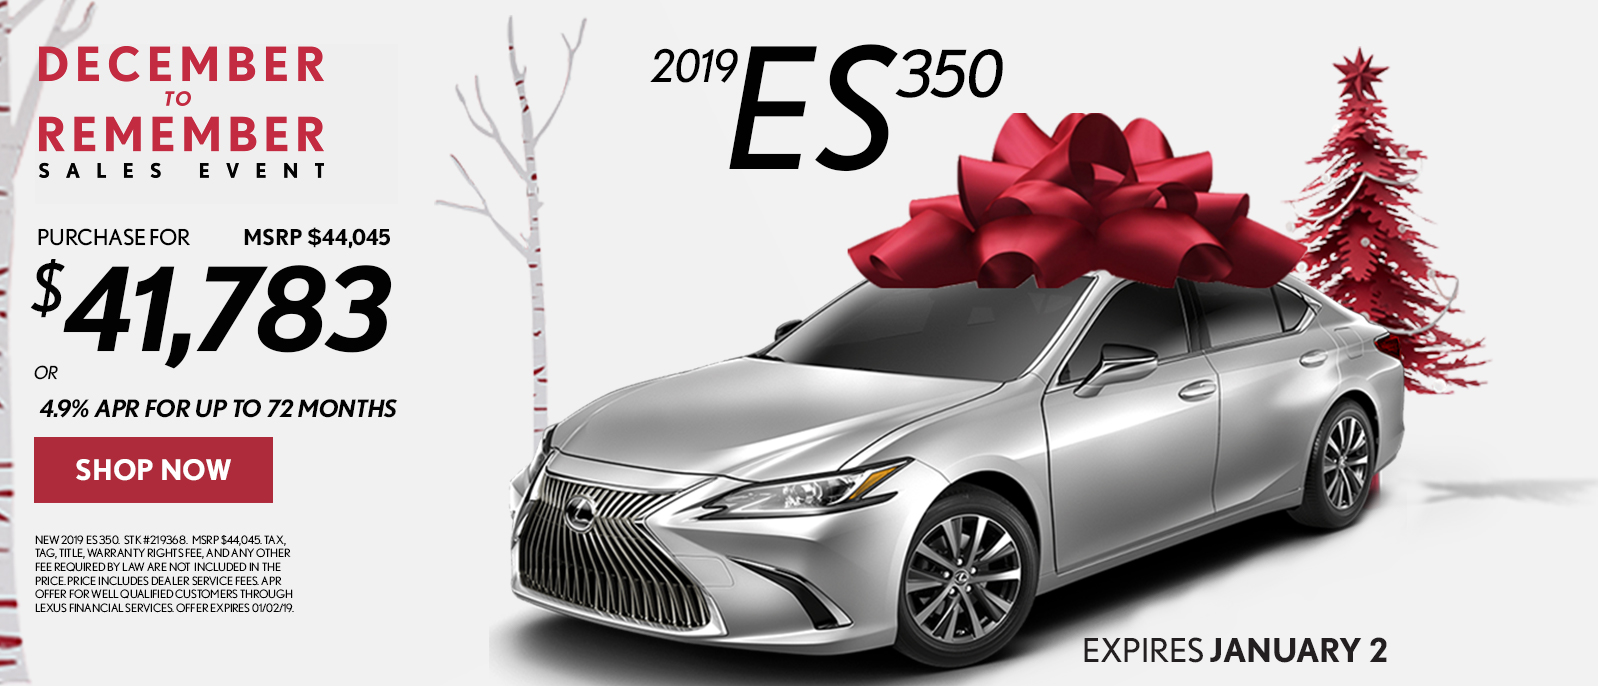 Hennessy Lexus Atlanta >> Hennessy Lexus | Lexus December to Remember Offers and ...